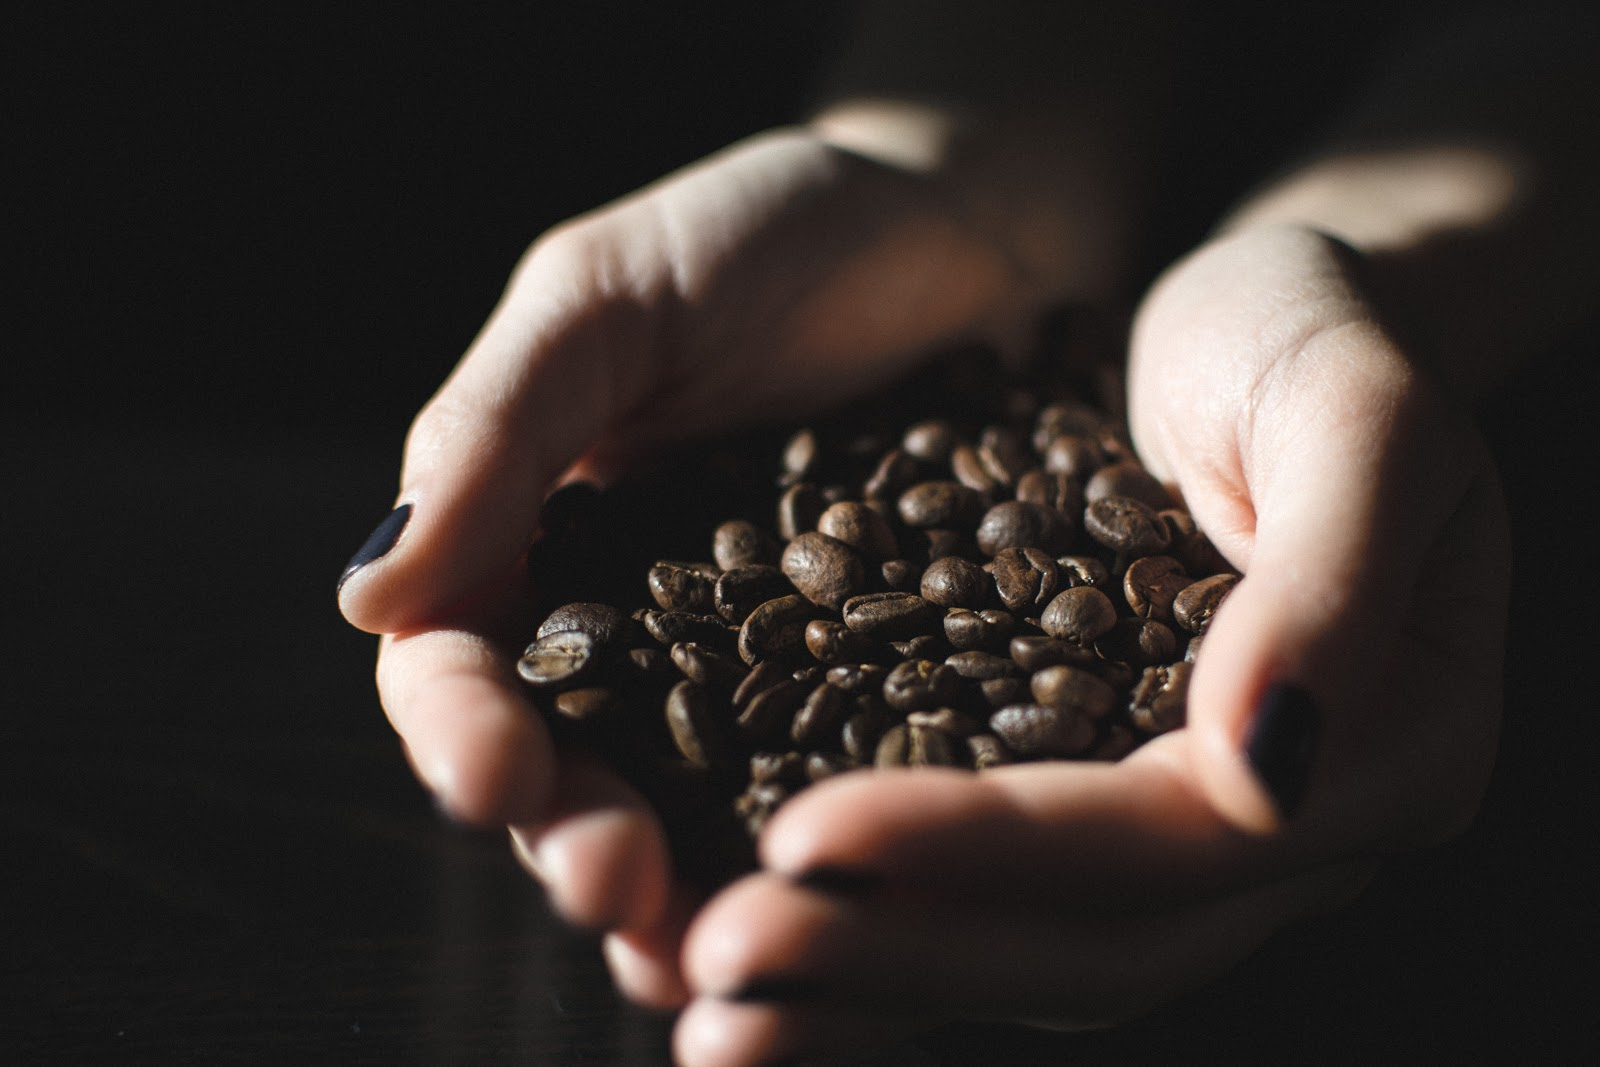 a person holding coffee beans in their palms